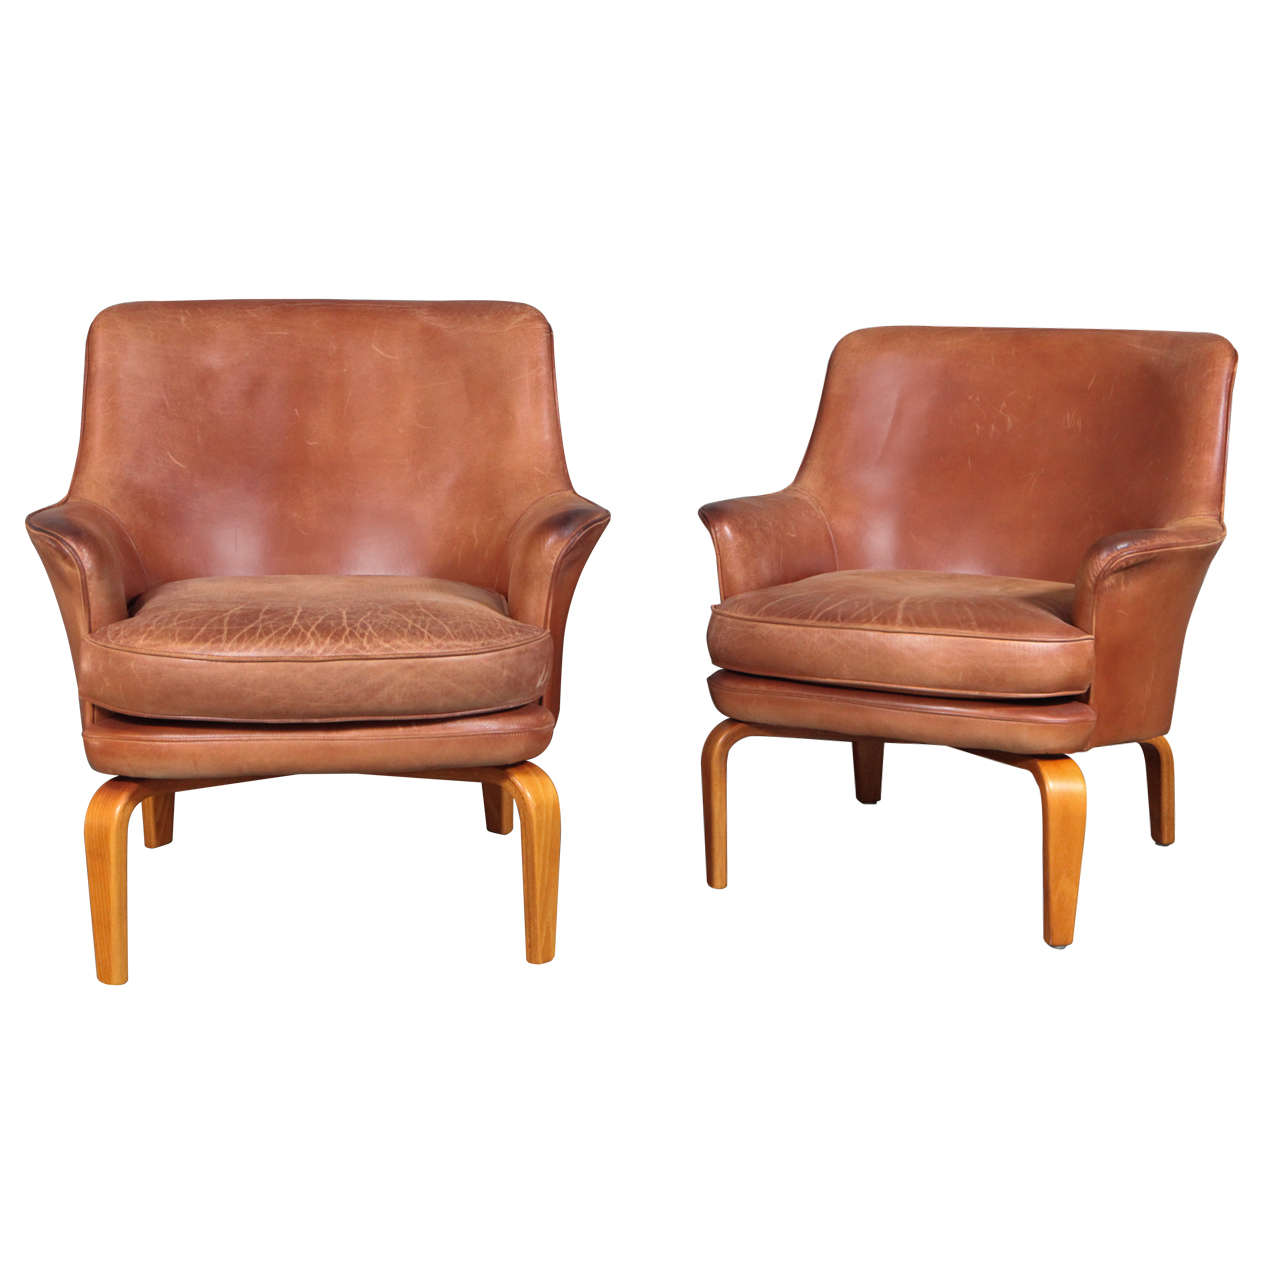 Pair of Arne Norell 'Pilot' Lounge Chairs